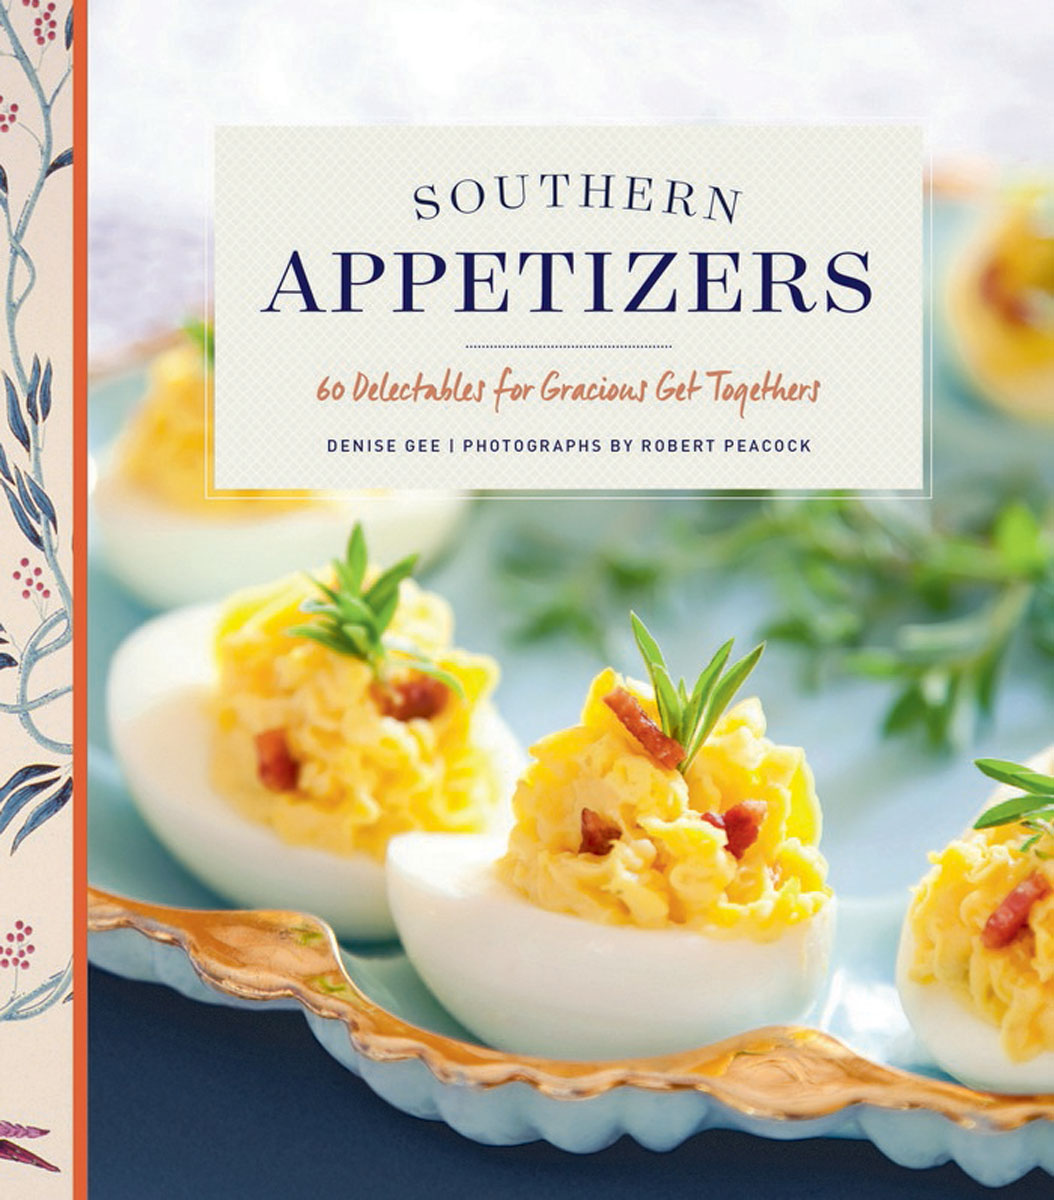 Southern Appetizers presidential nominee will address a gathering